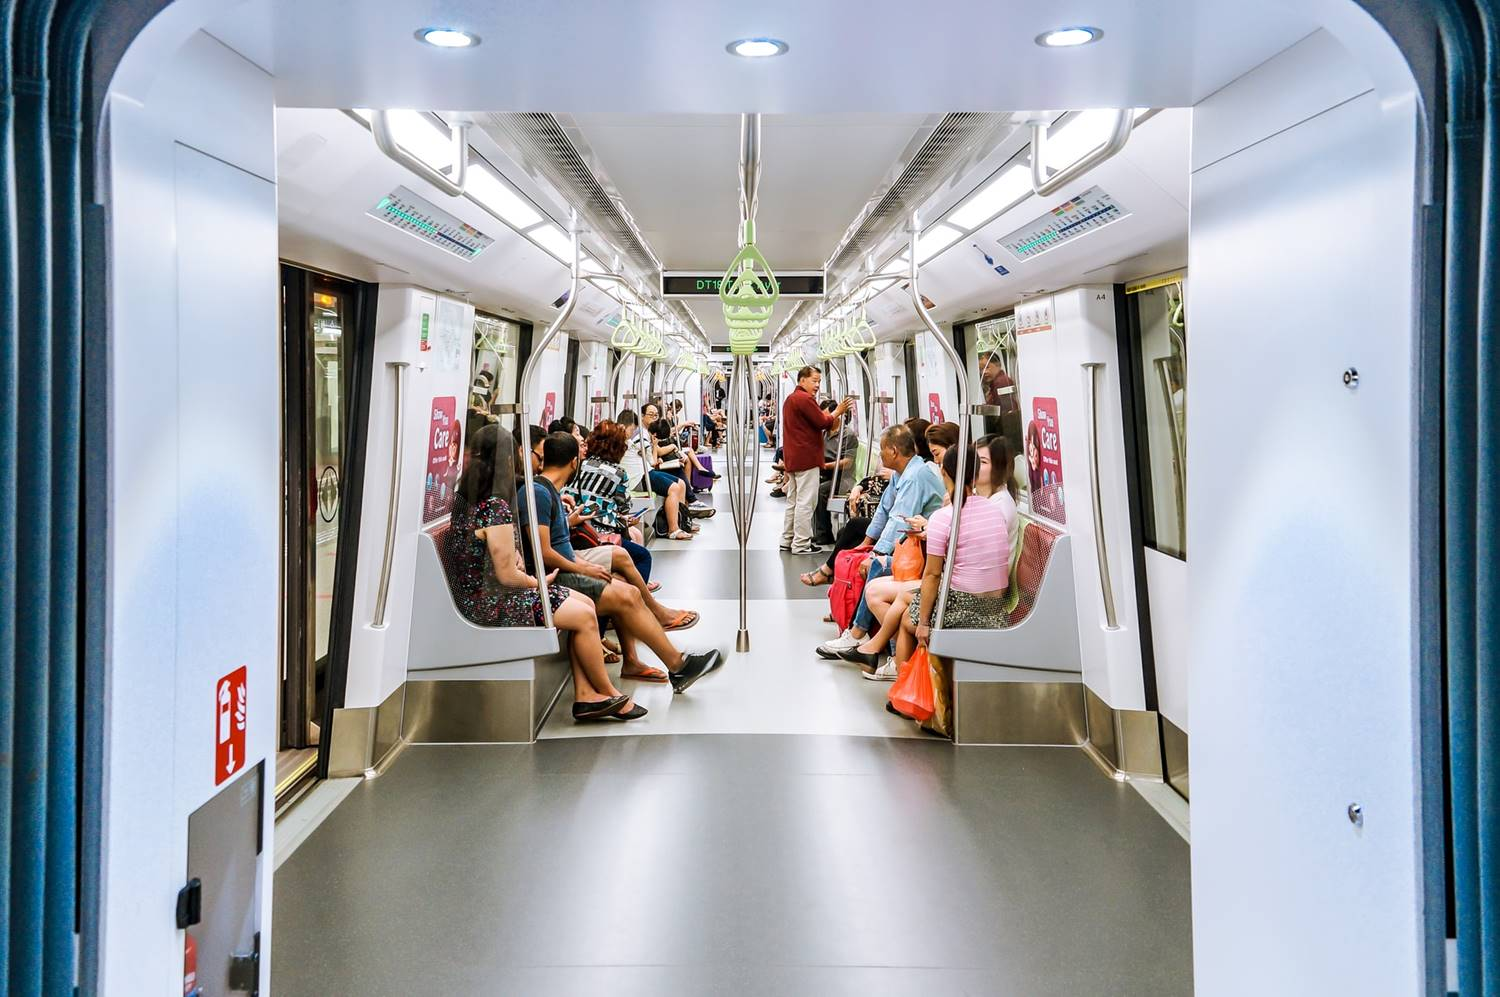 Ilustrasi MRT di Singapura. Photo by Euan Cameron on Unsplash